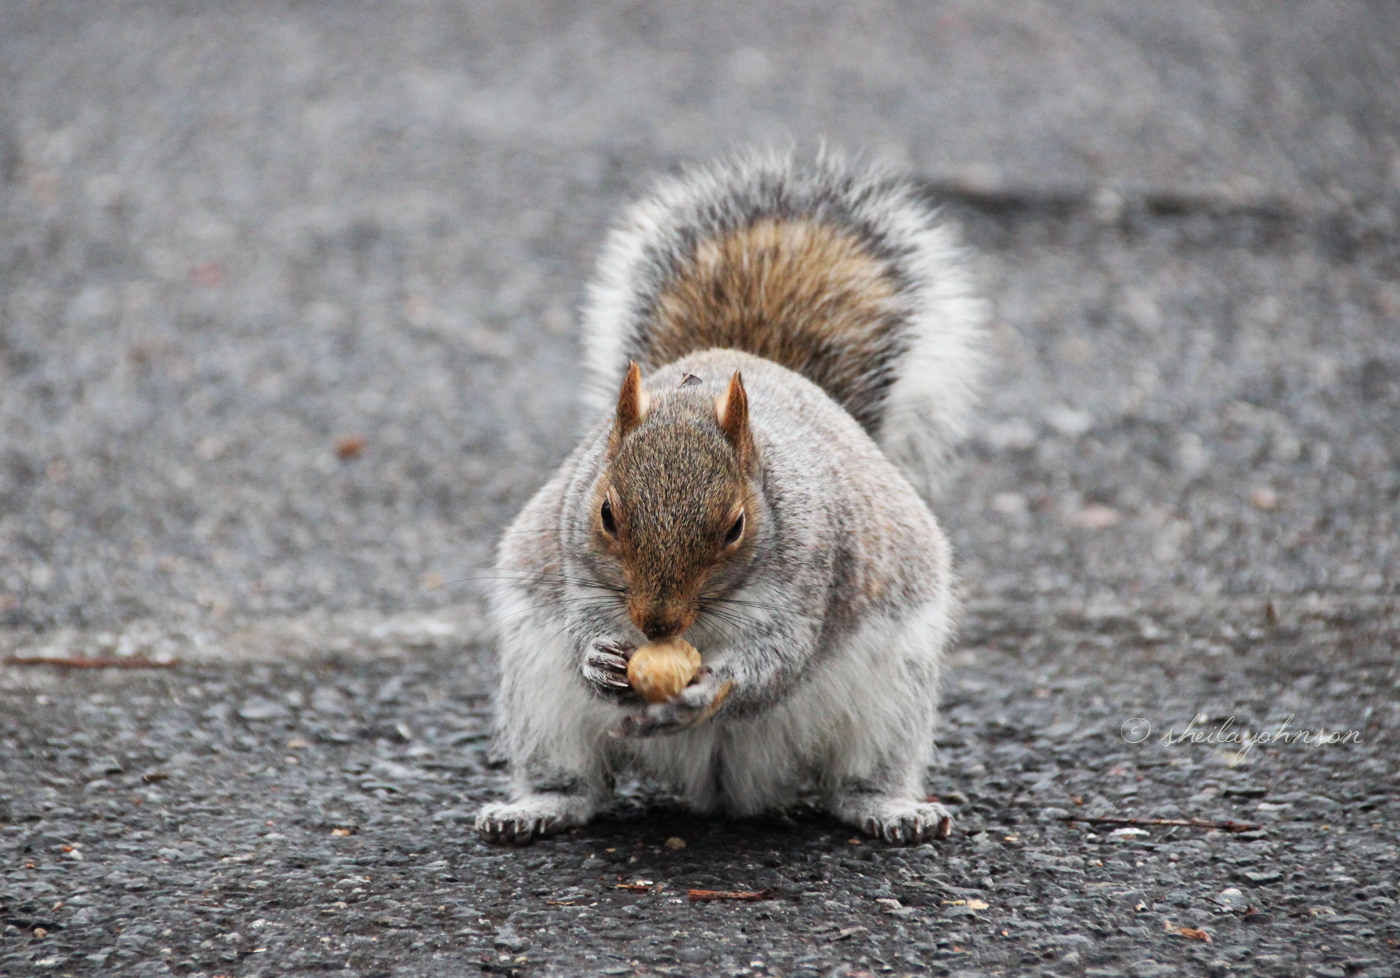 A Big Squirrel Requires Big Nuts For The Storage Of Winter Fat. This Big Squirrel Has A Head Start On Winter.